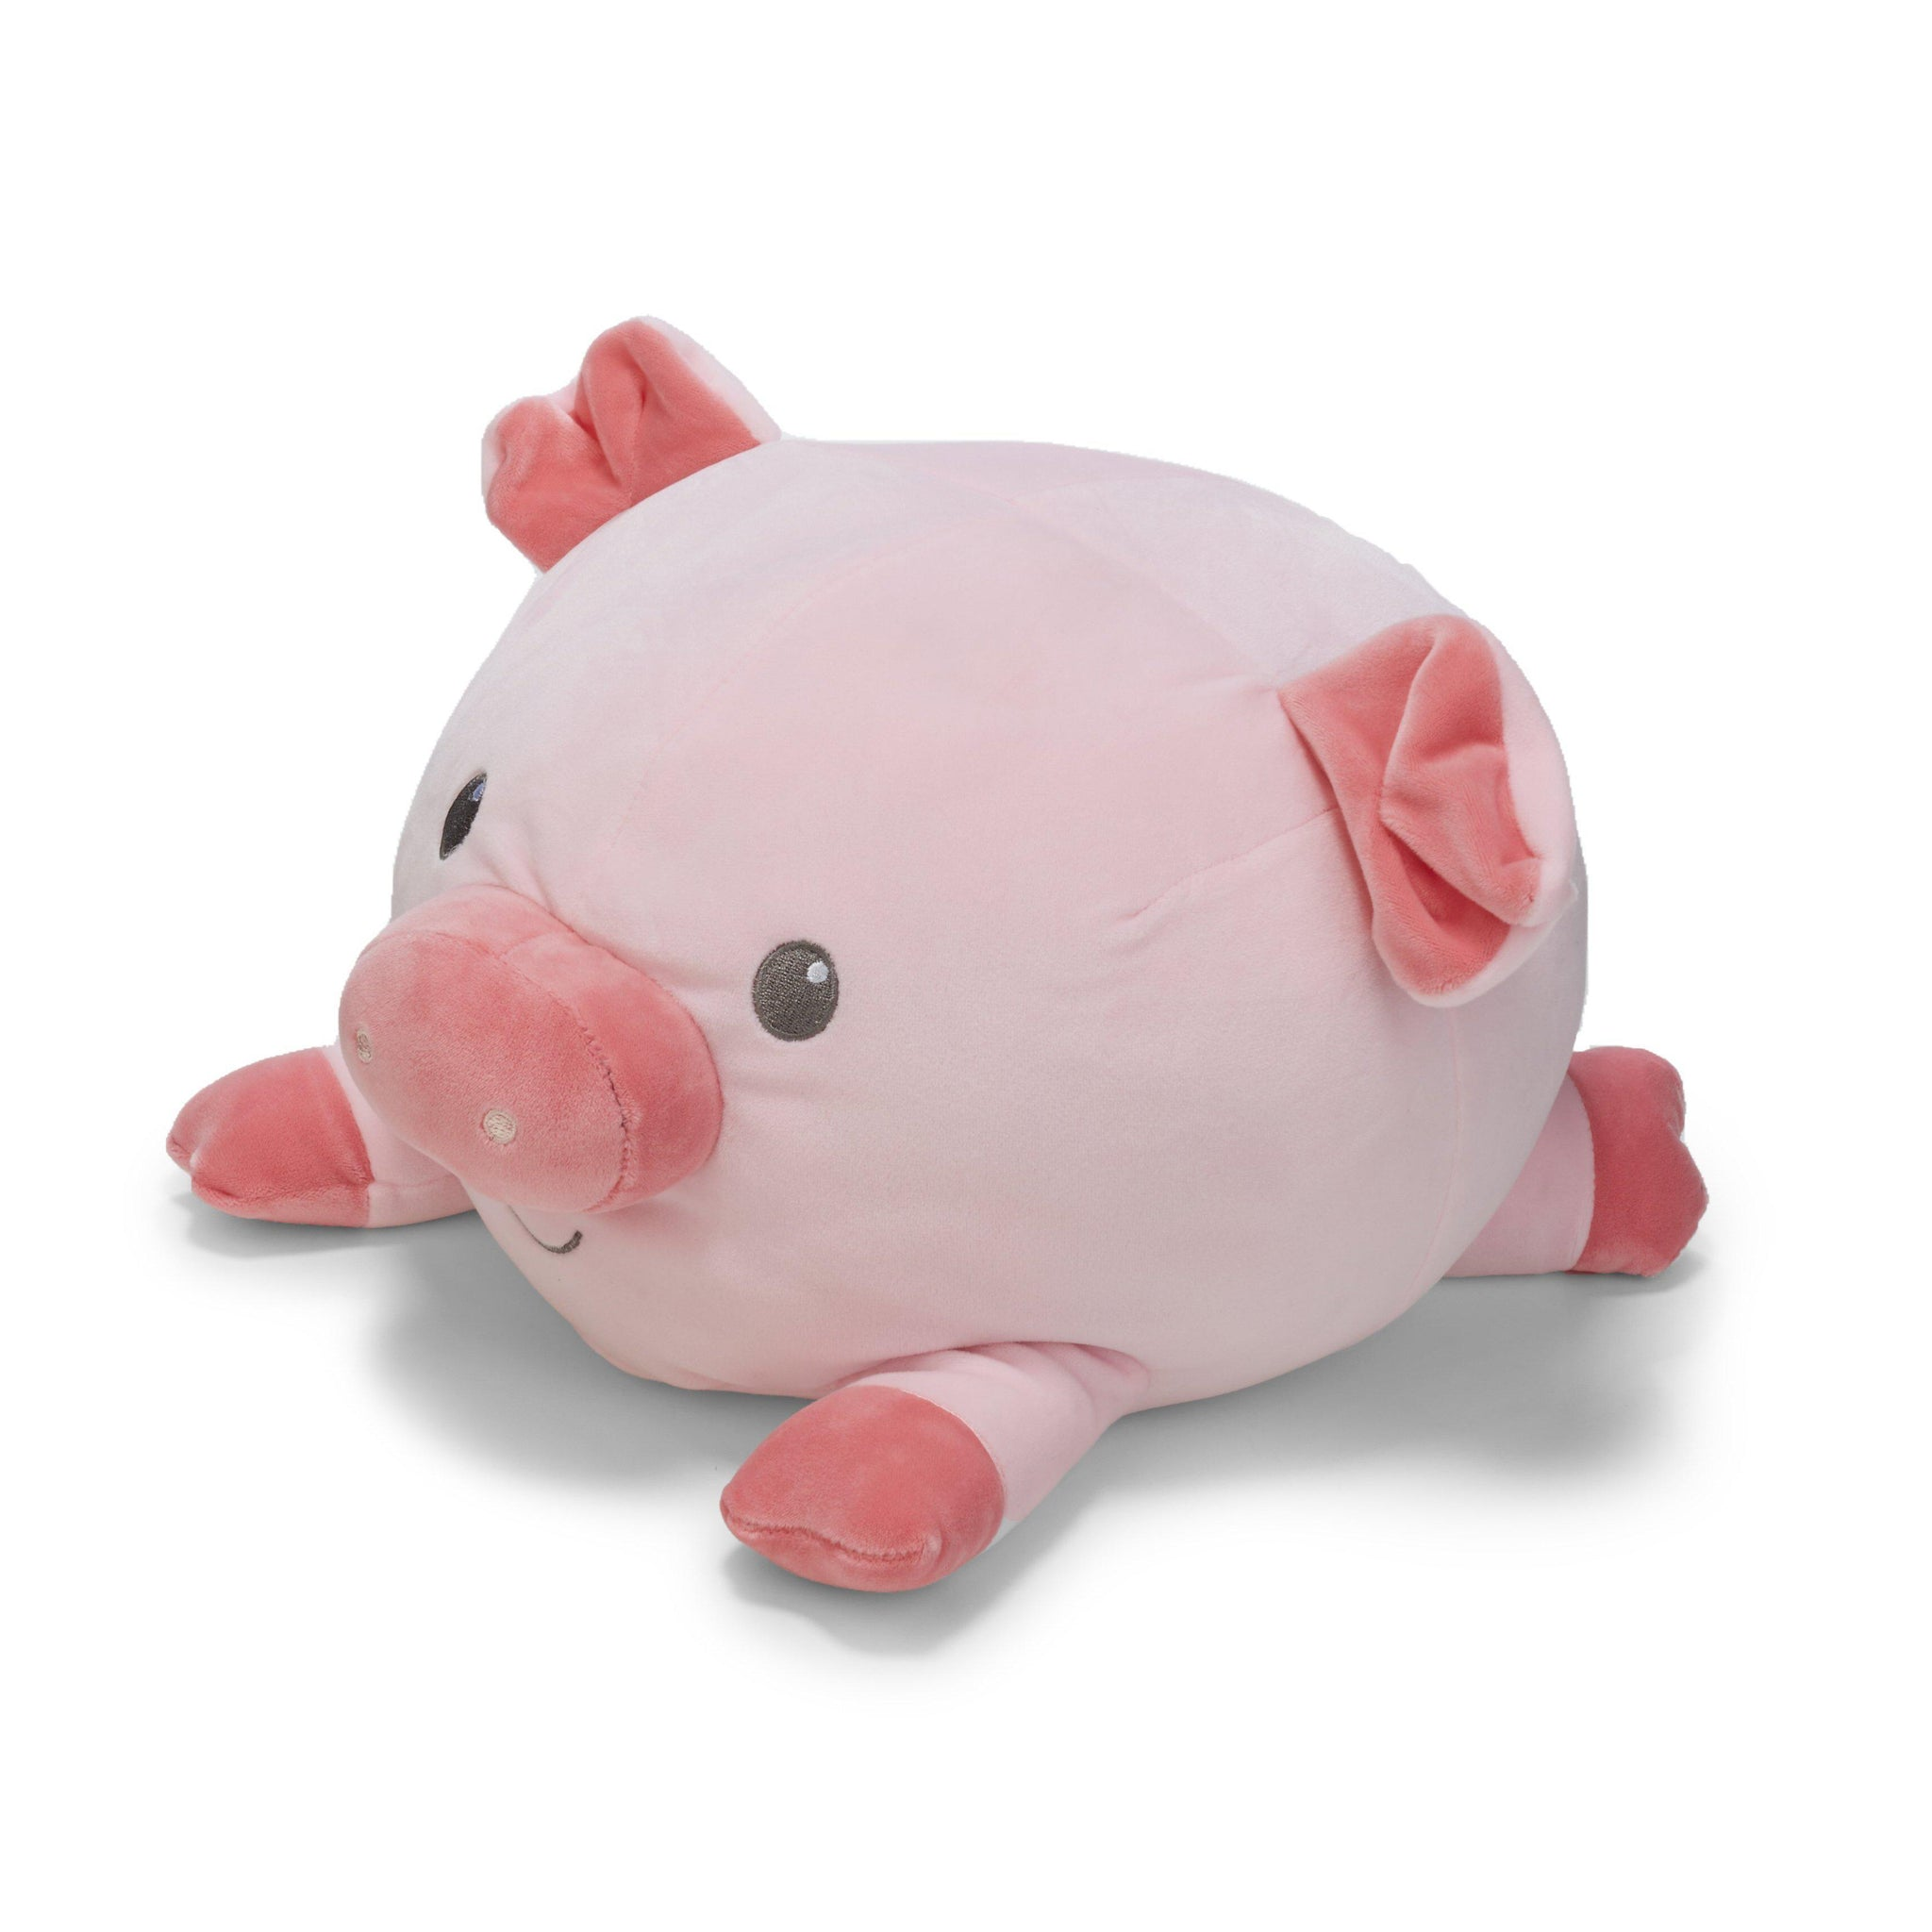 Cuddle Pals™ Round Pig Stuffed Animal